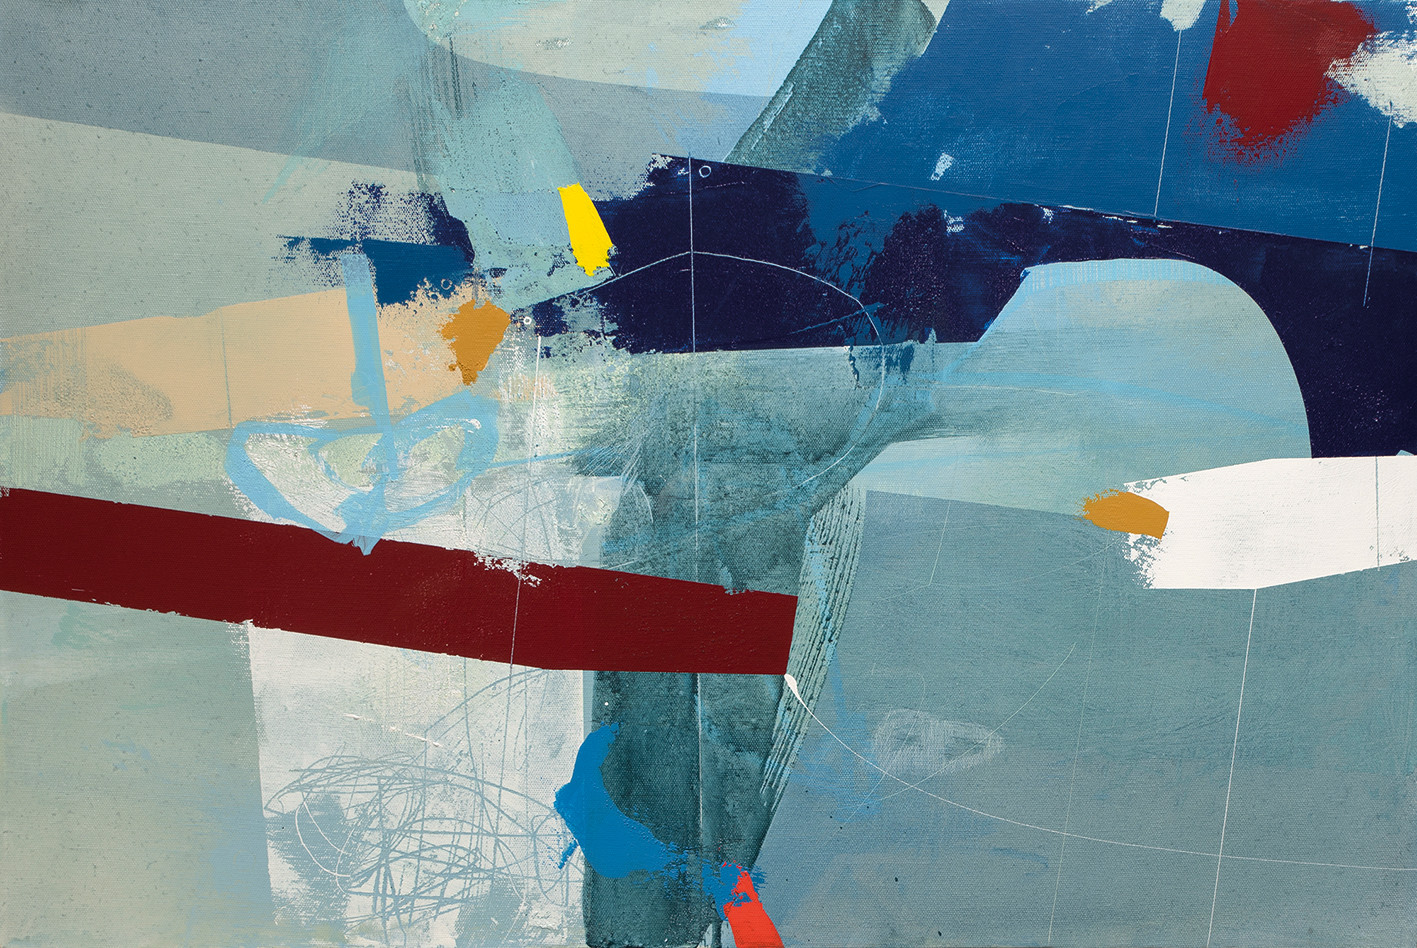 <span class=&#34;link fancybox-details-link&#34;><a href=&#34;/artists/77-andrew-bird/works/6199-andrew-bird-into-the-blue-2019/&#34;>View Detail Page</a></span><div class=&#34;artist&#34;><strong>Andrew Bird</strong></div> <div class=&#34;title&#34;><em>Into the Blue</em>, 2019</div> <div class=&#34;signed_and_dated&#34;>signed, titled and dated on reverse</div> <div class=&#34;medium&#34;>acrylic on canvas</div> <div class=&#34;dimensions&#34;>h 50.5 x w 76.5 cm<br /> 19 7/8 x 30 1/8 in</div><div class=&#34;price&#34;>£1,600.00</div><div class=&#34;copyright_line&#34;>Own Art: £ 160 x 10 Months, 0% APR</div>